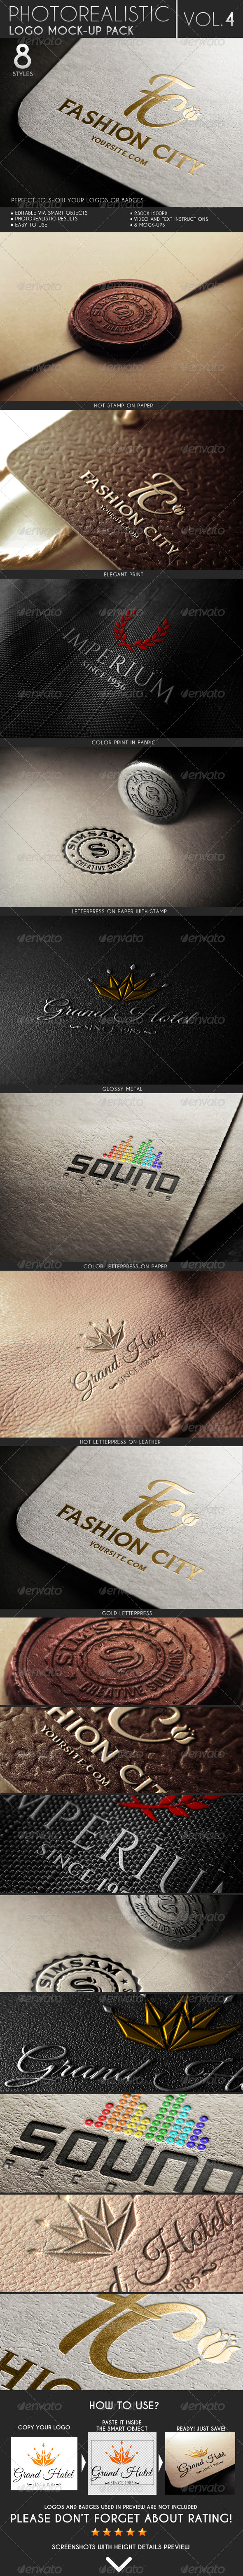 Photorealistic Logo Mock-Up Pack Vol.4 - Logo Product Mock-Ups